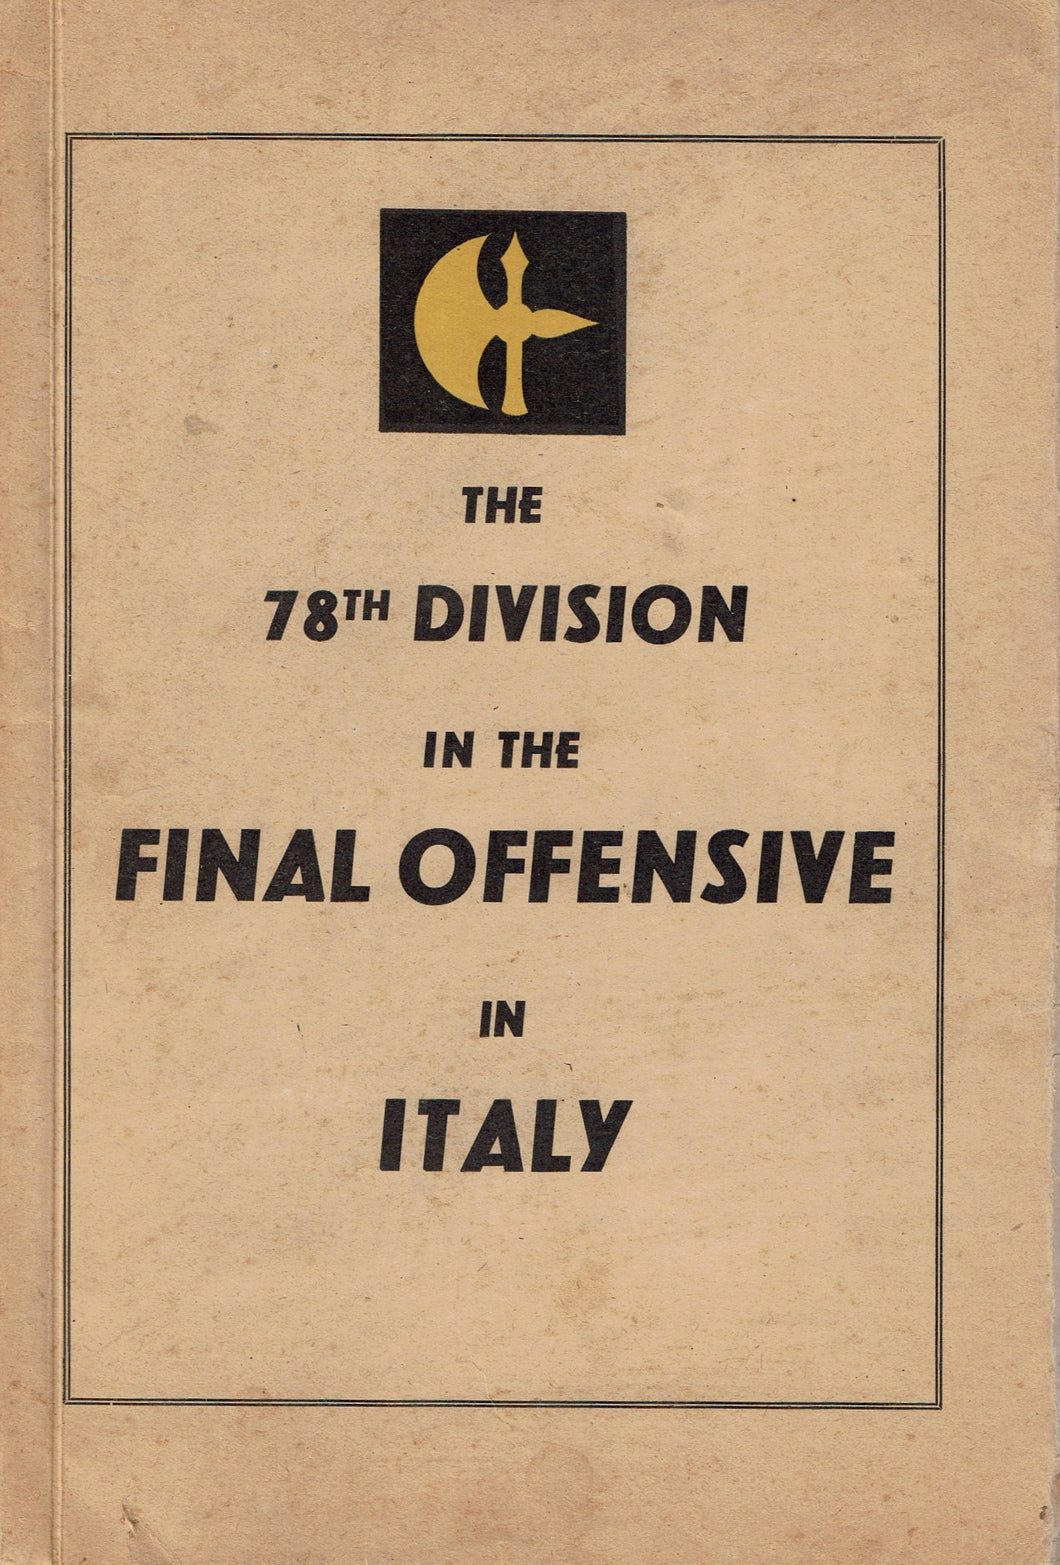 The 78th Division in the Final Offensive in Italy